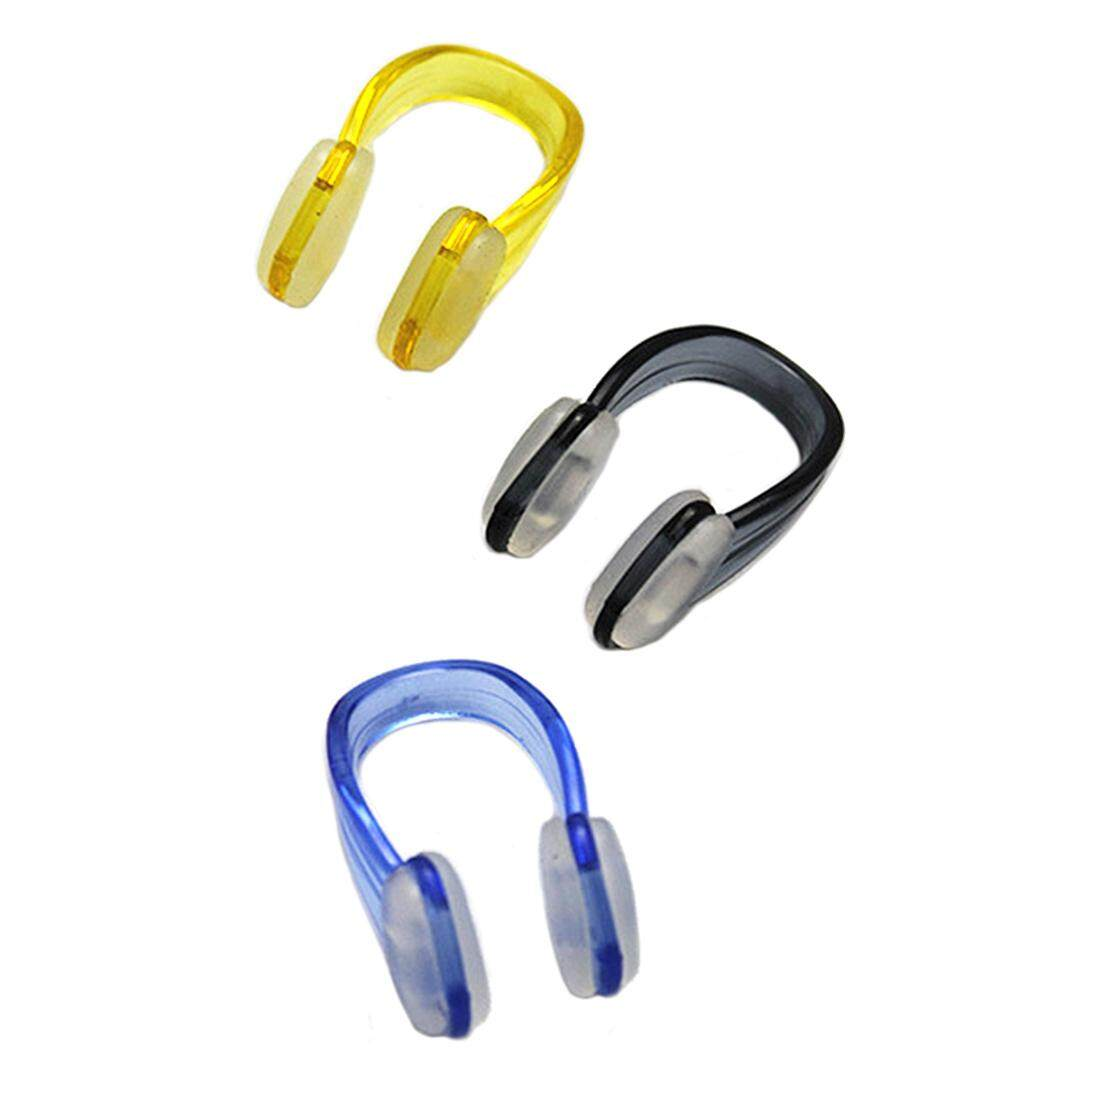 3 Pcs Swimming Nose Clip Diving Protector Plastic Nose Clip By Yomichew.